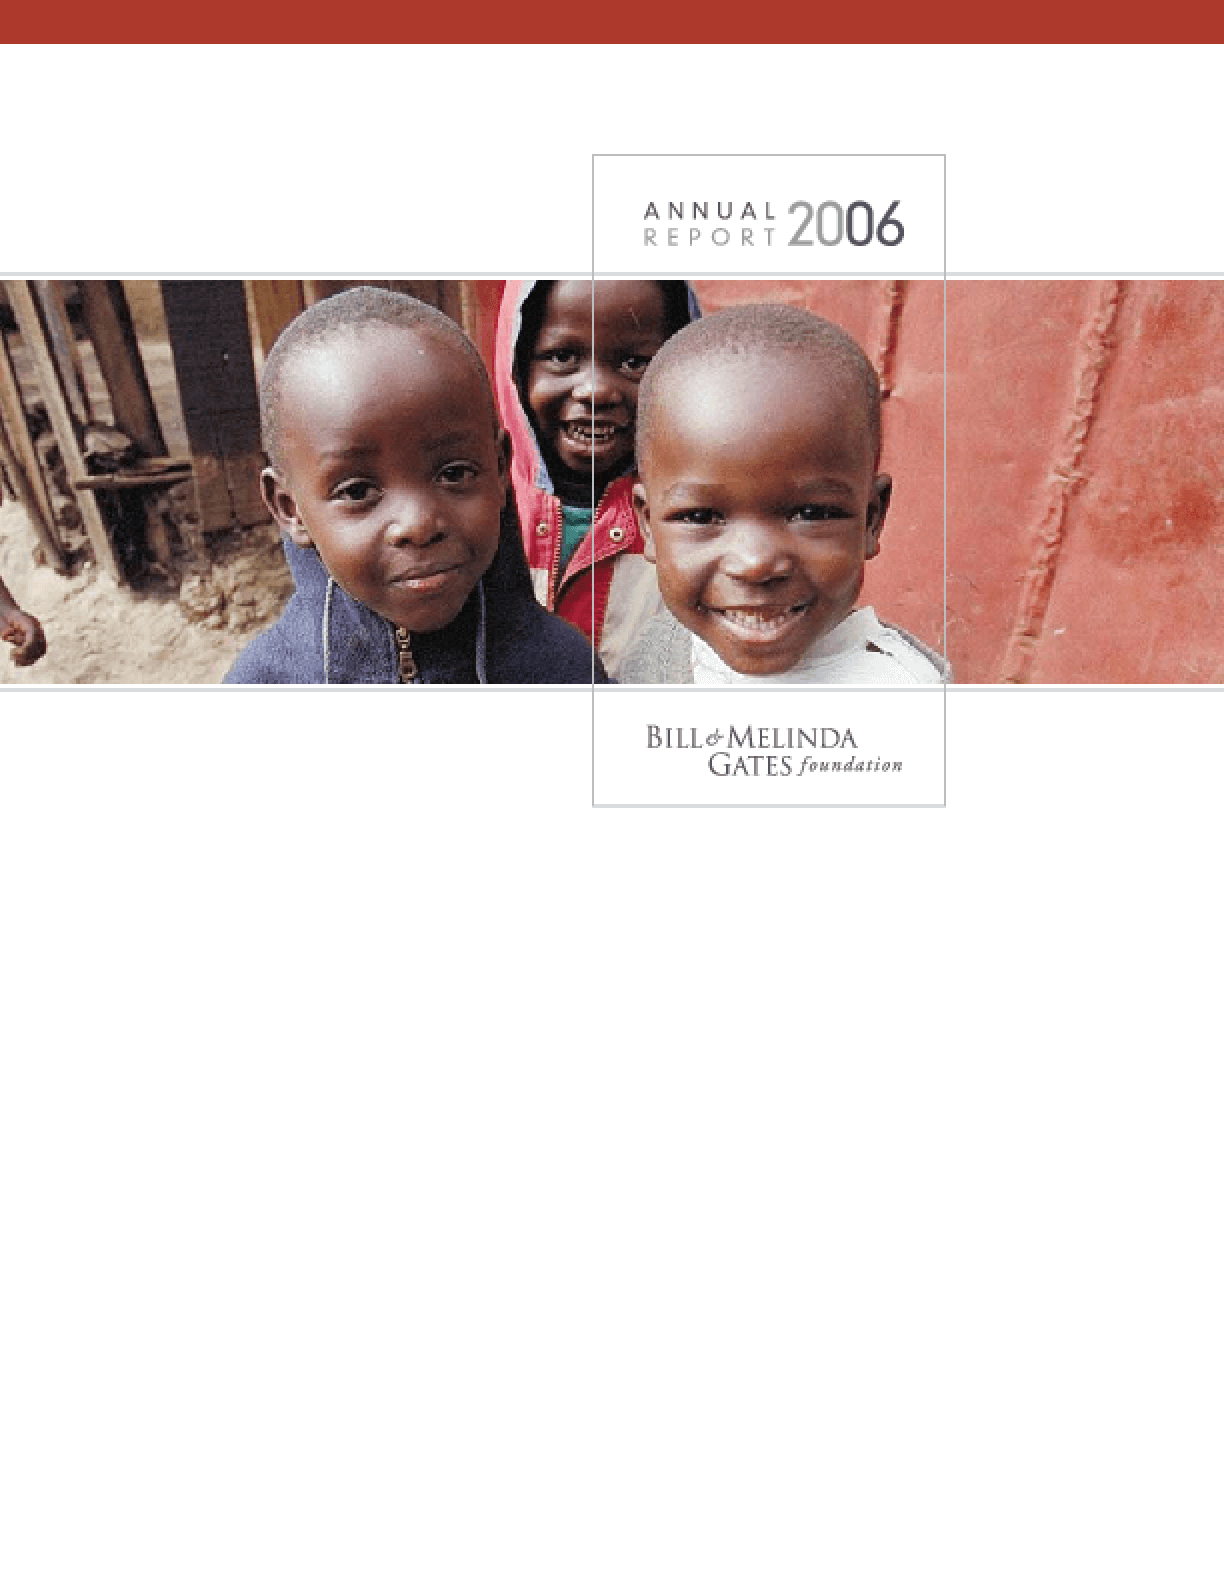 Bill & Melinda Gates Foundation - 2006 Annual Report